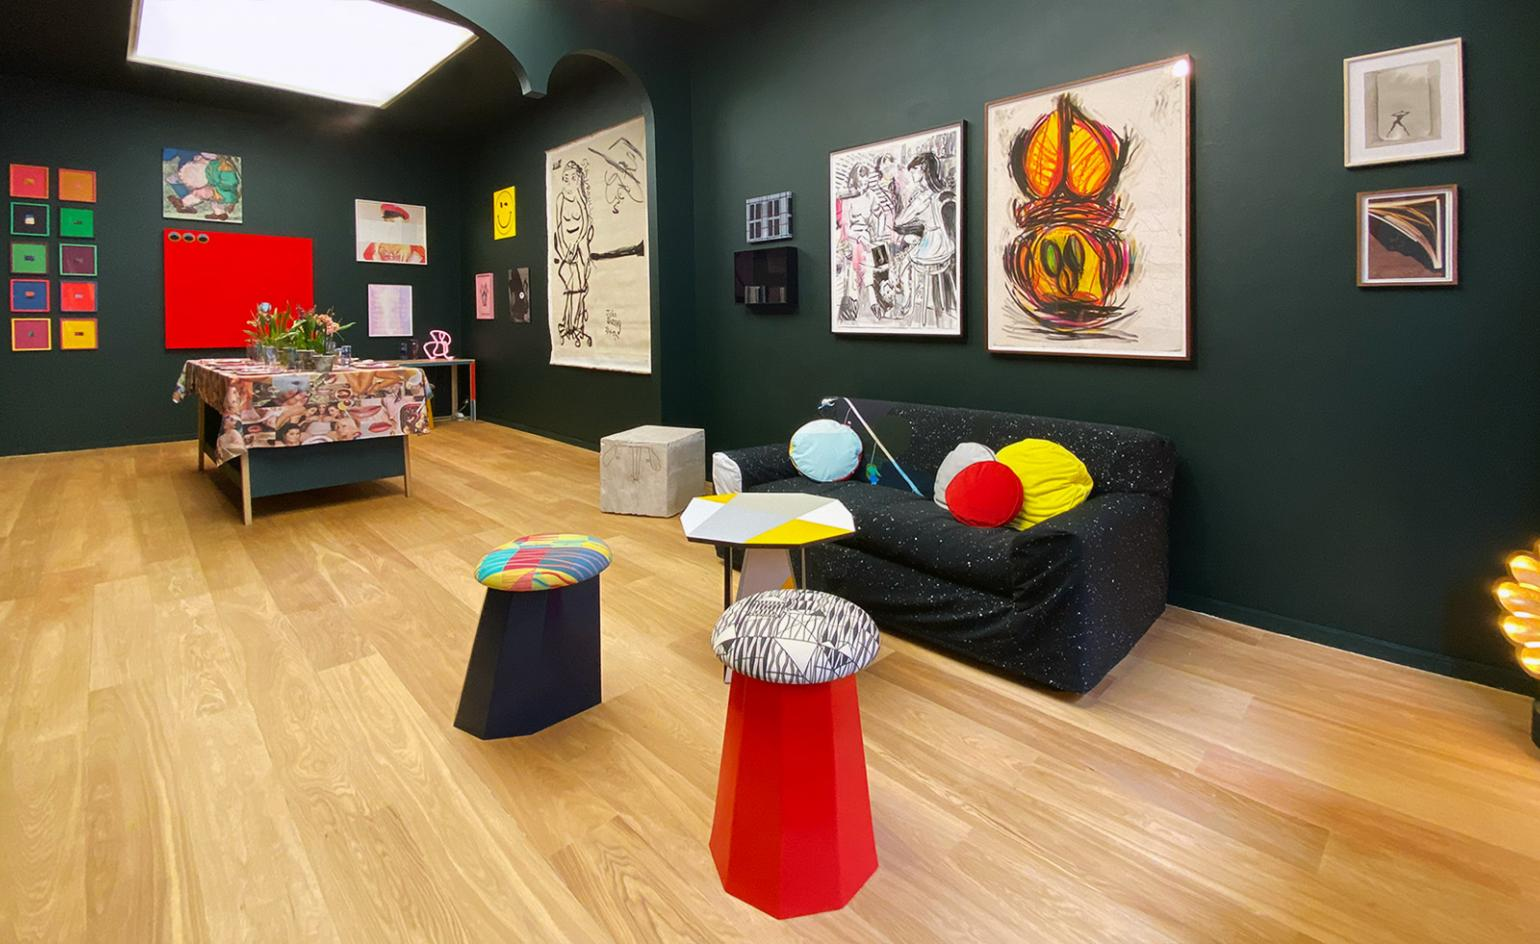 Studio Voltaire's art and design store is popping up in Mayfair